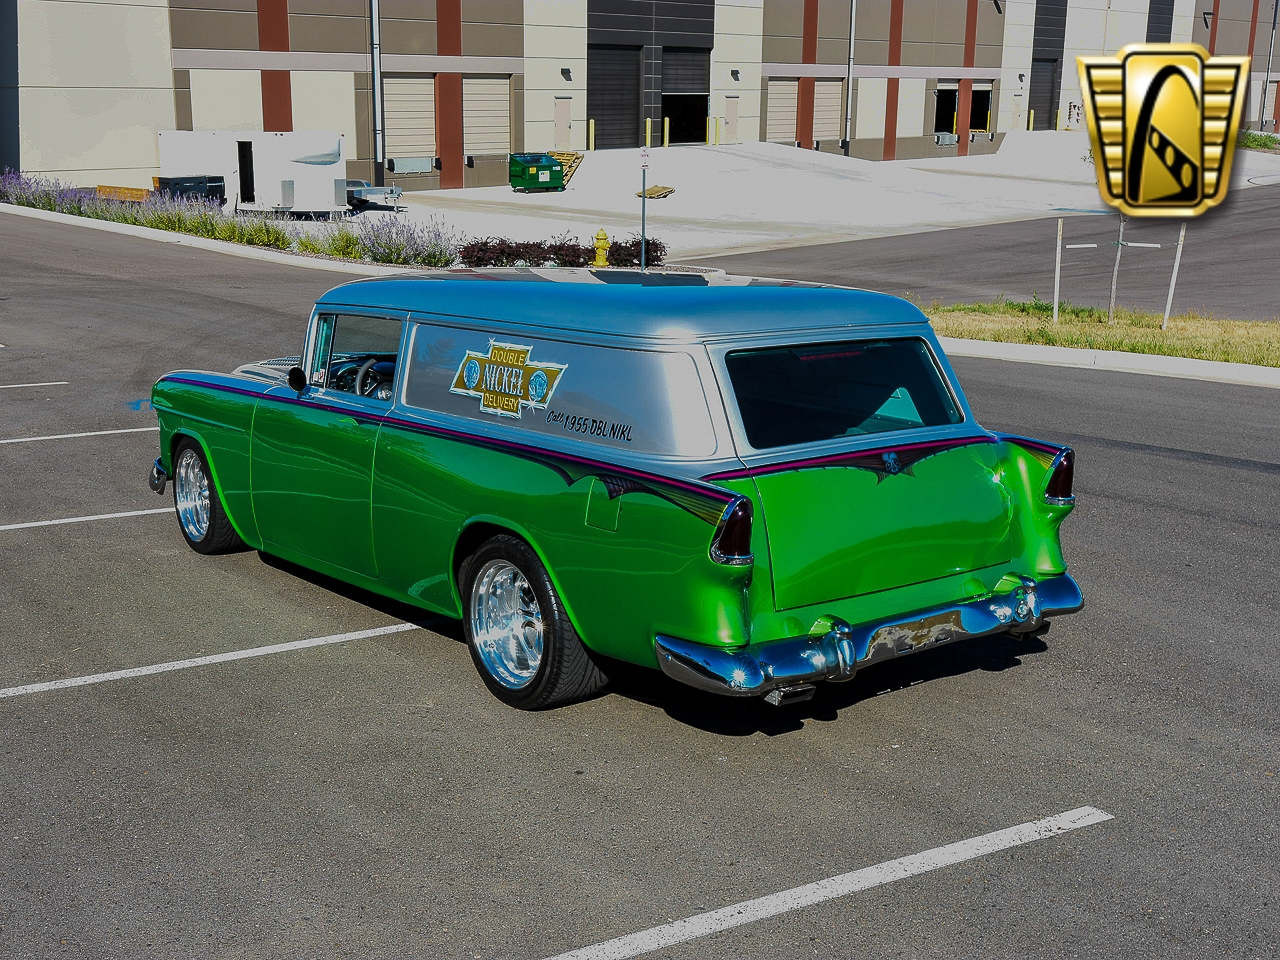 Details about 1955 Chevrolet Sedan Delivery --